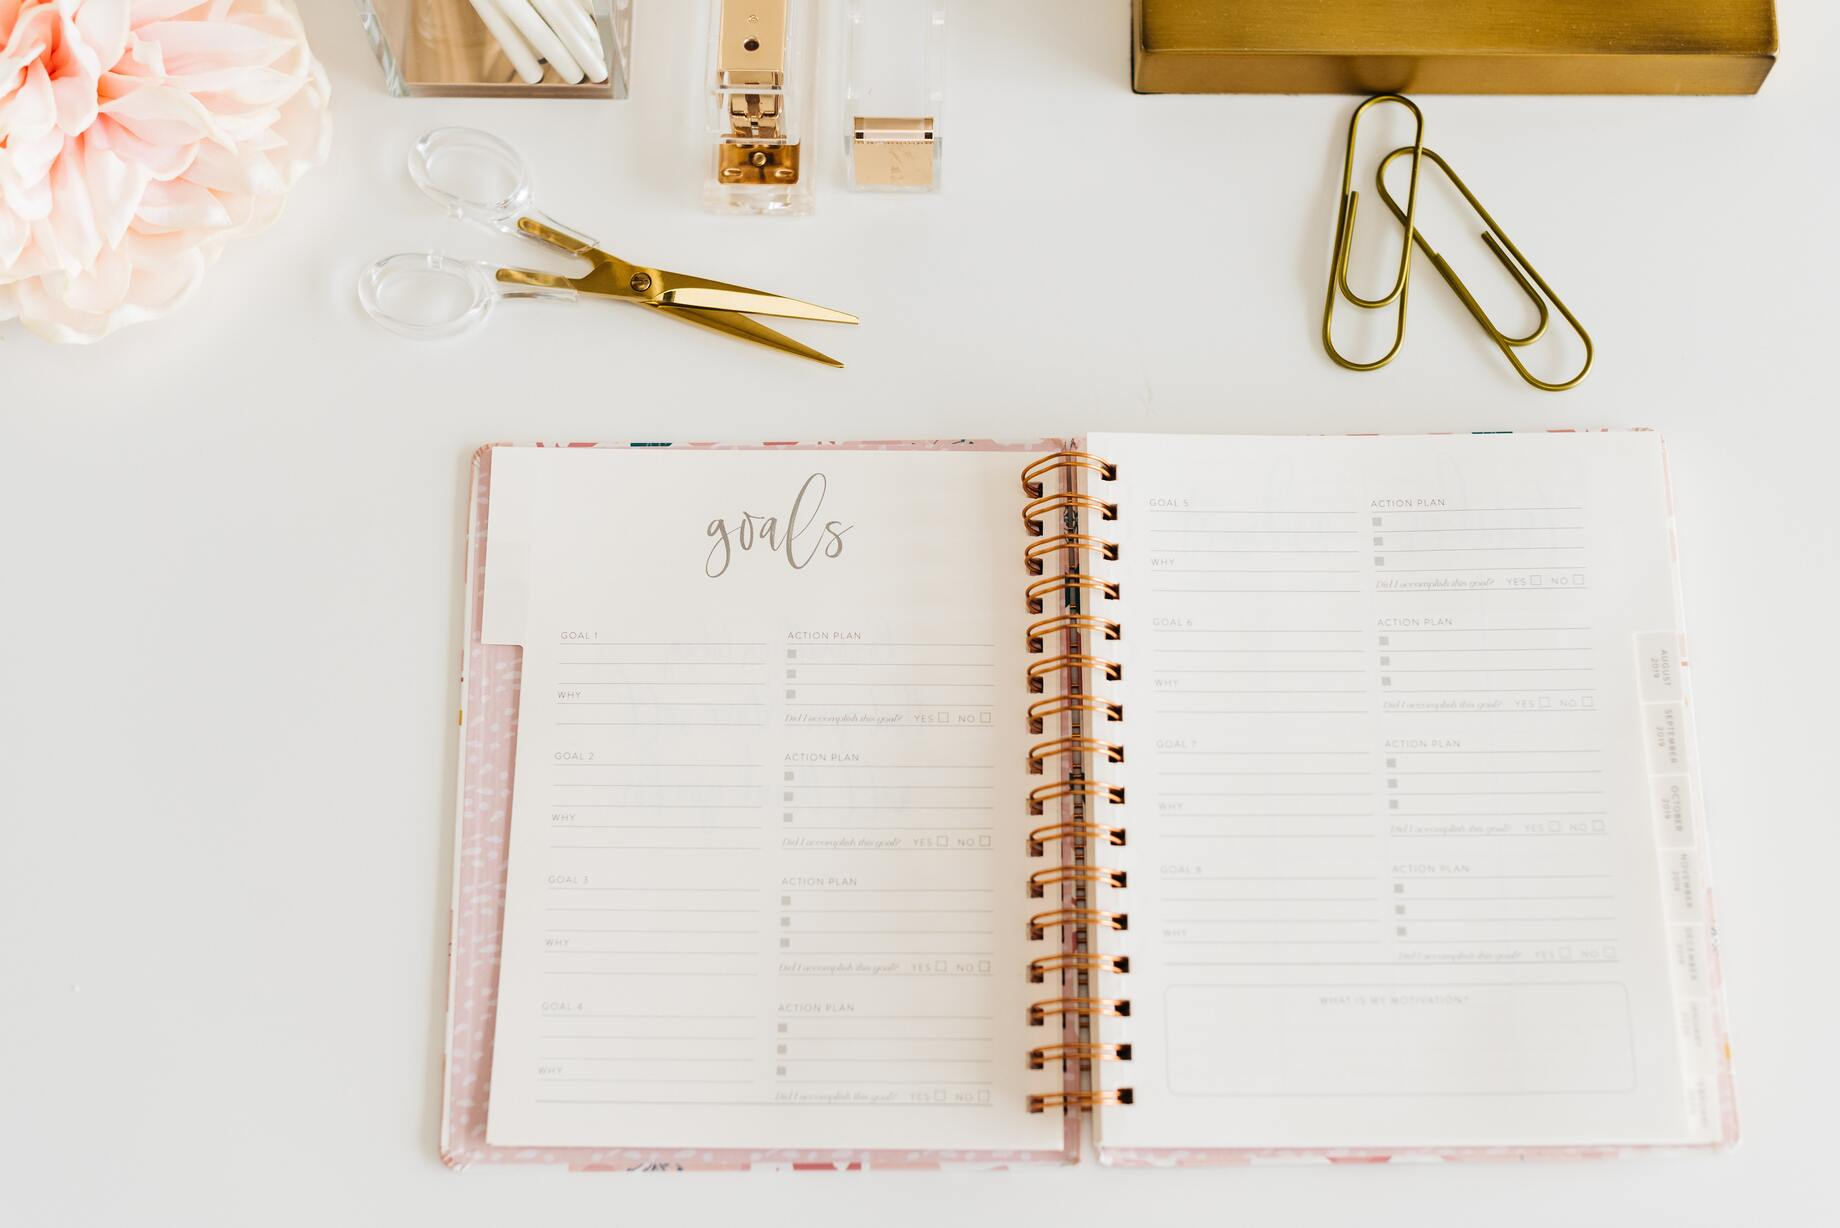 image of freelancer planner with goals on top